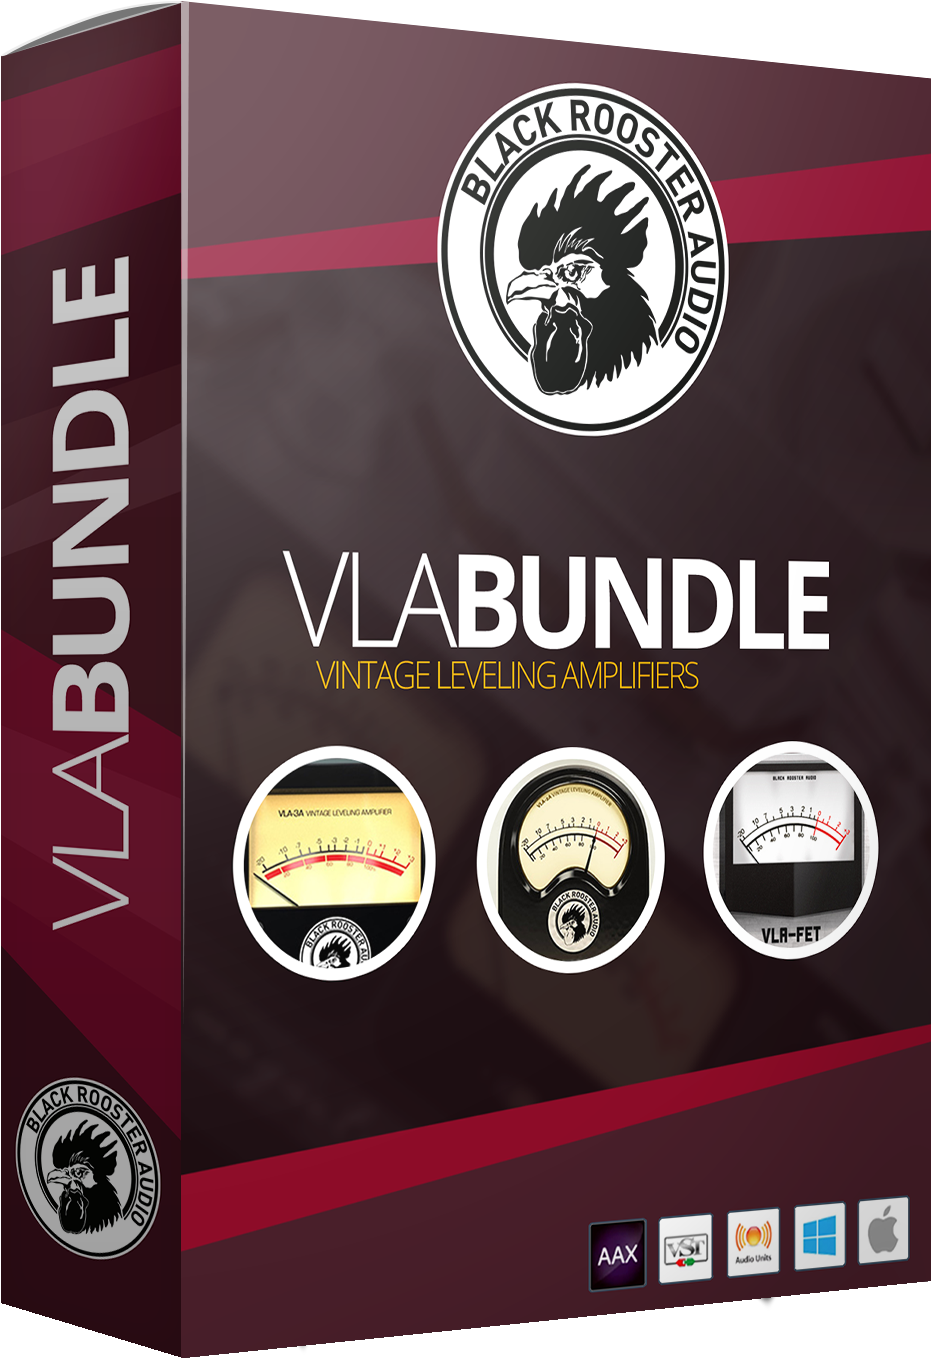 """85% off """"The VLA Bundle"""" by Black Rooster Audio"""